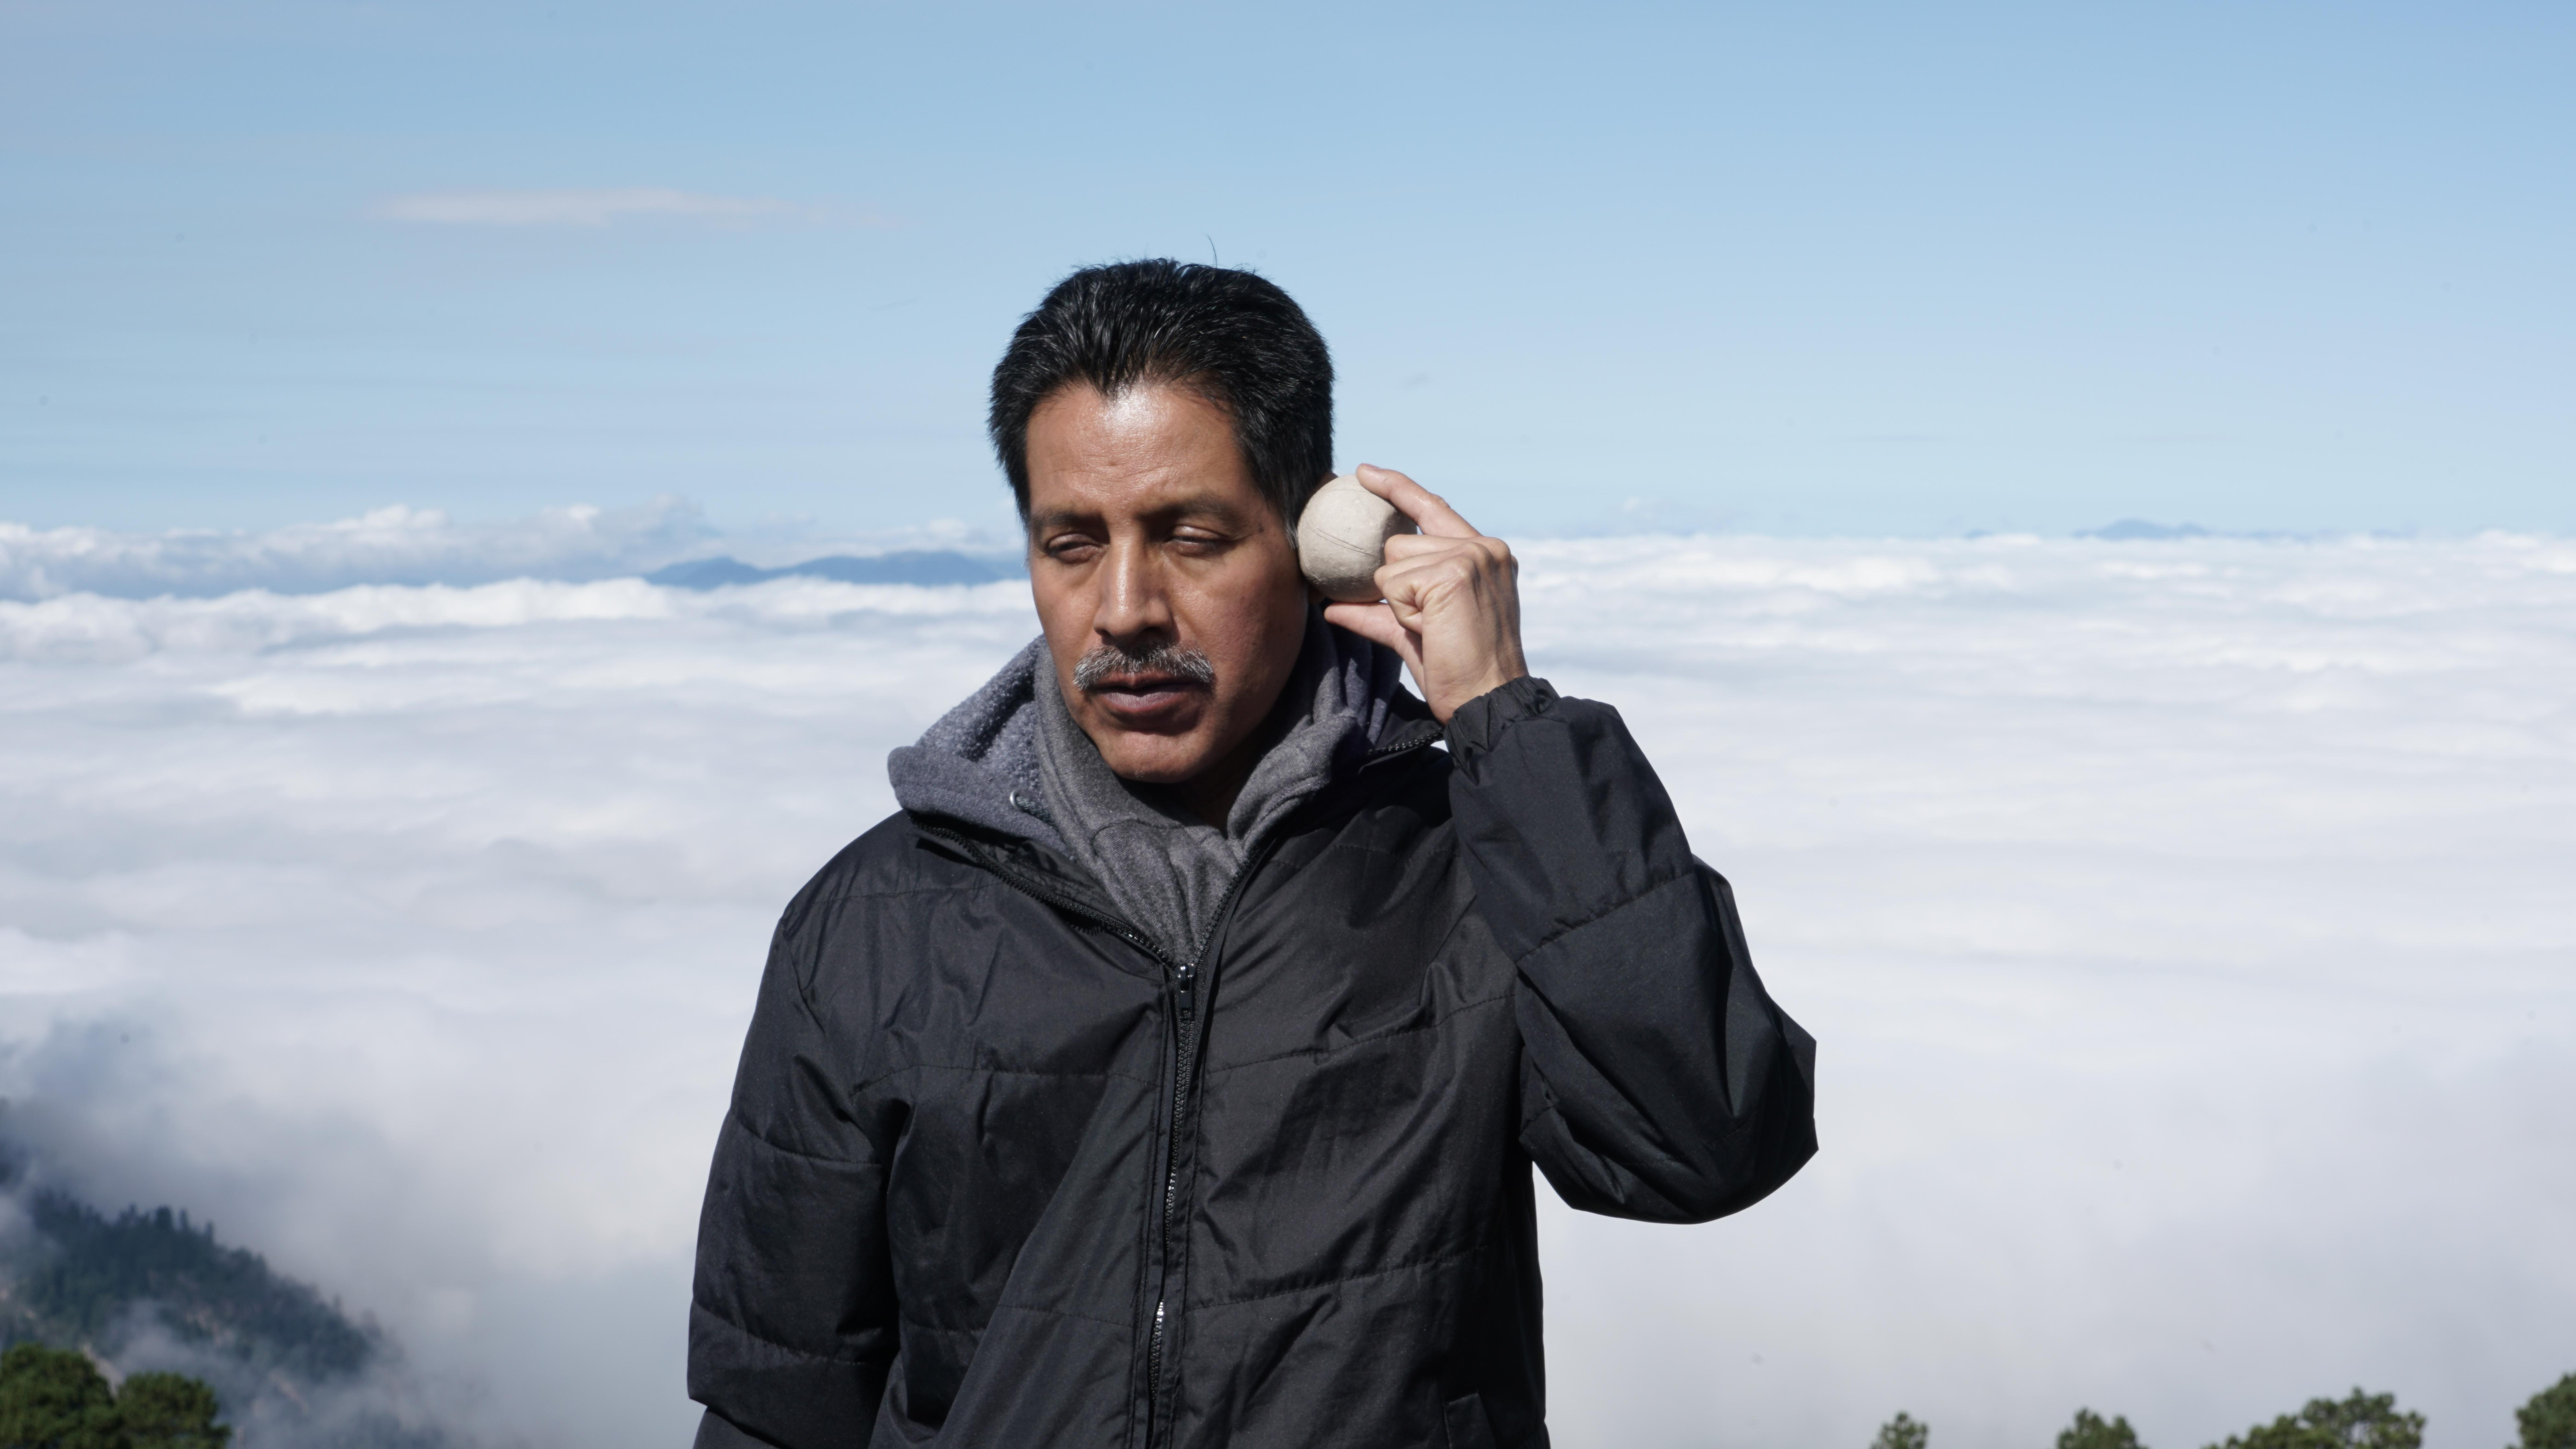 A man with medium-toned skin closes his eyes and holds a round, rock-like object against his temple. Behind him is a low cloud bank, indicating that he is standing at a very high elevation.